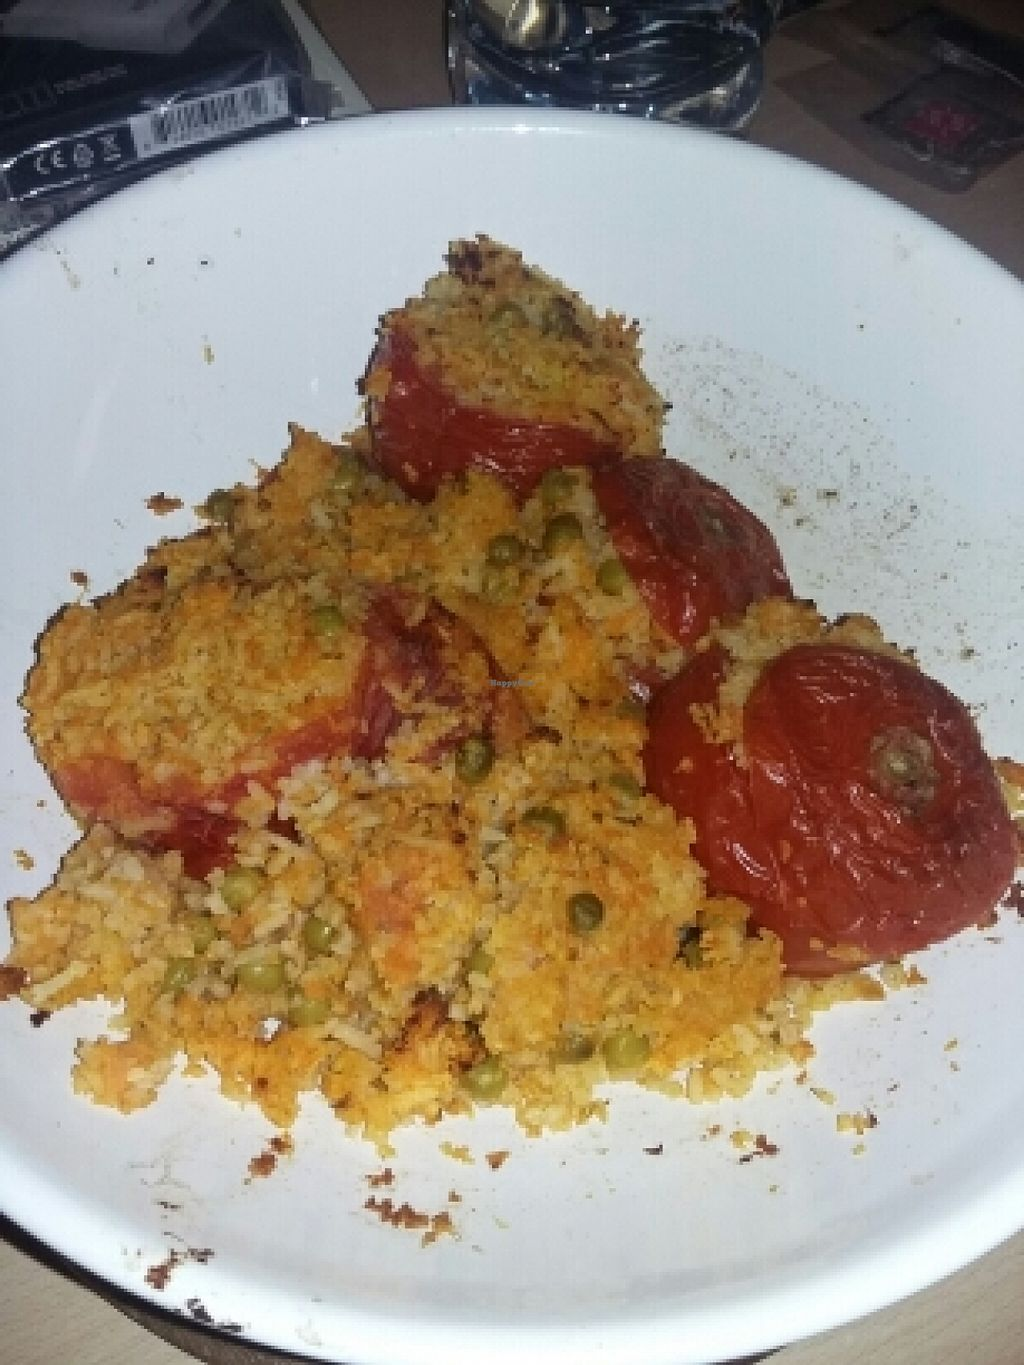 """Photo of Alte Muhle  by <a href=""""/members/profile/martins.diary"""">martins.diary</a> <br/>tomato with rice stuffing <br/> January 8, 2016  - <a href='/contact/abuse/image/64497/131461'>Report</a>"""